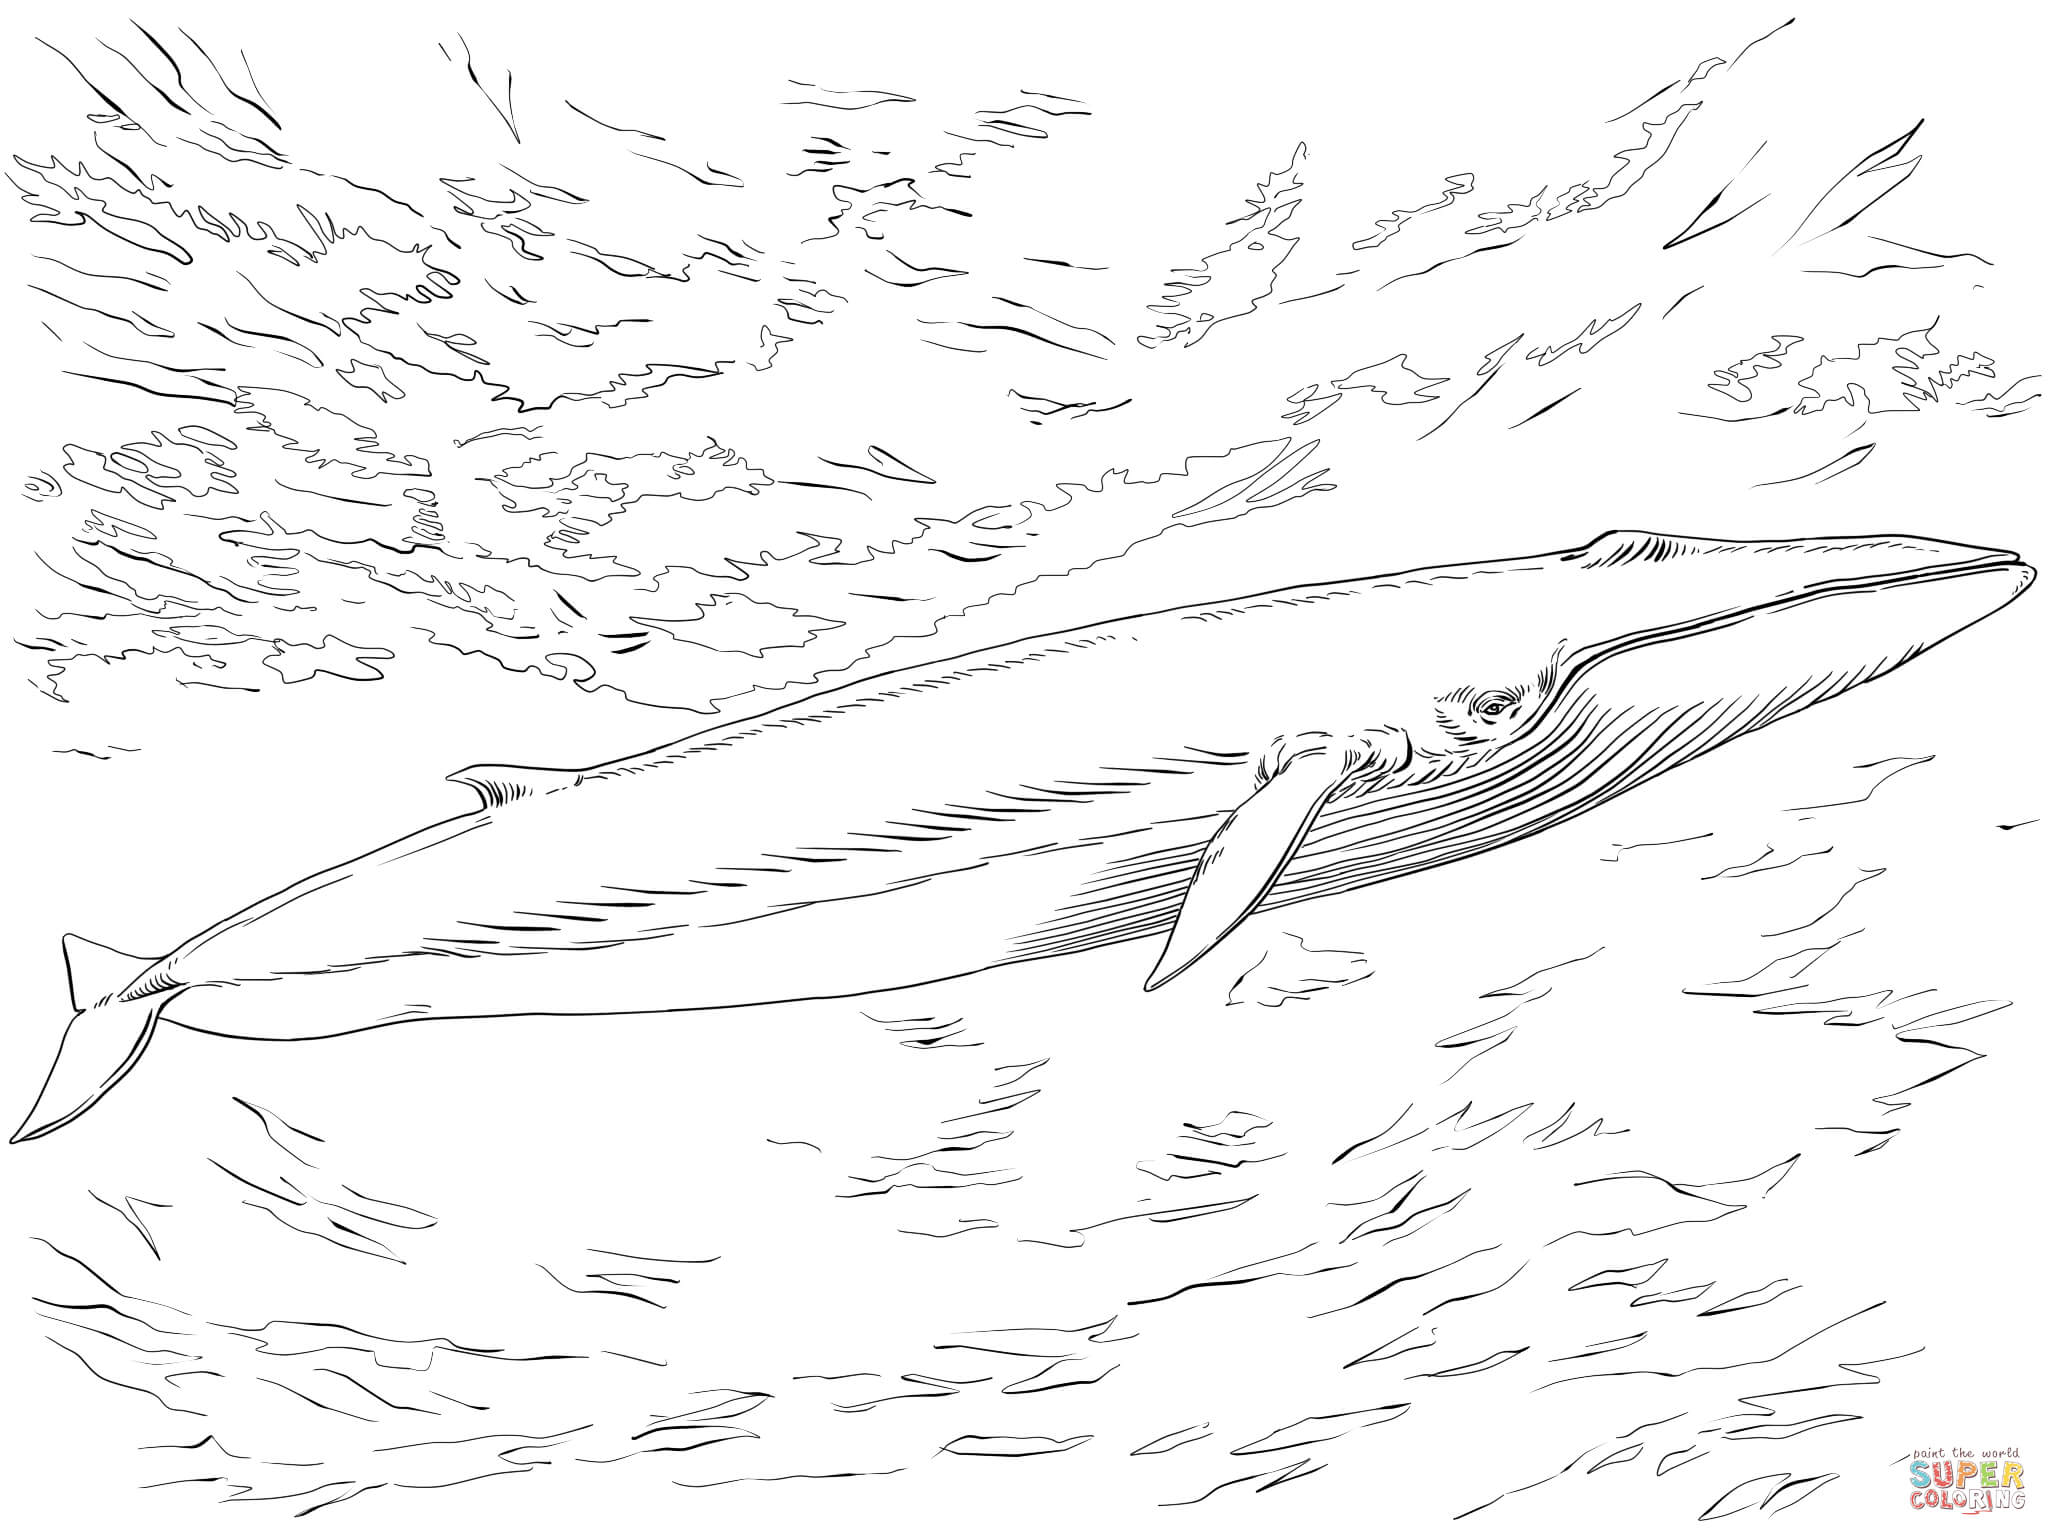 Fin Or Finback Whale Coloring Page Free Printable Coloring Pages